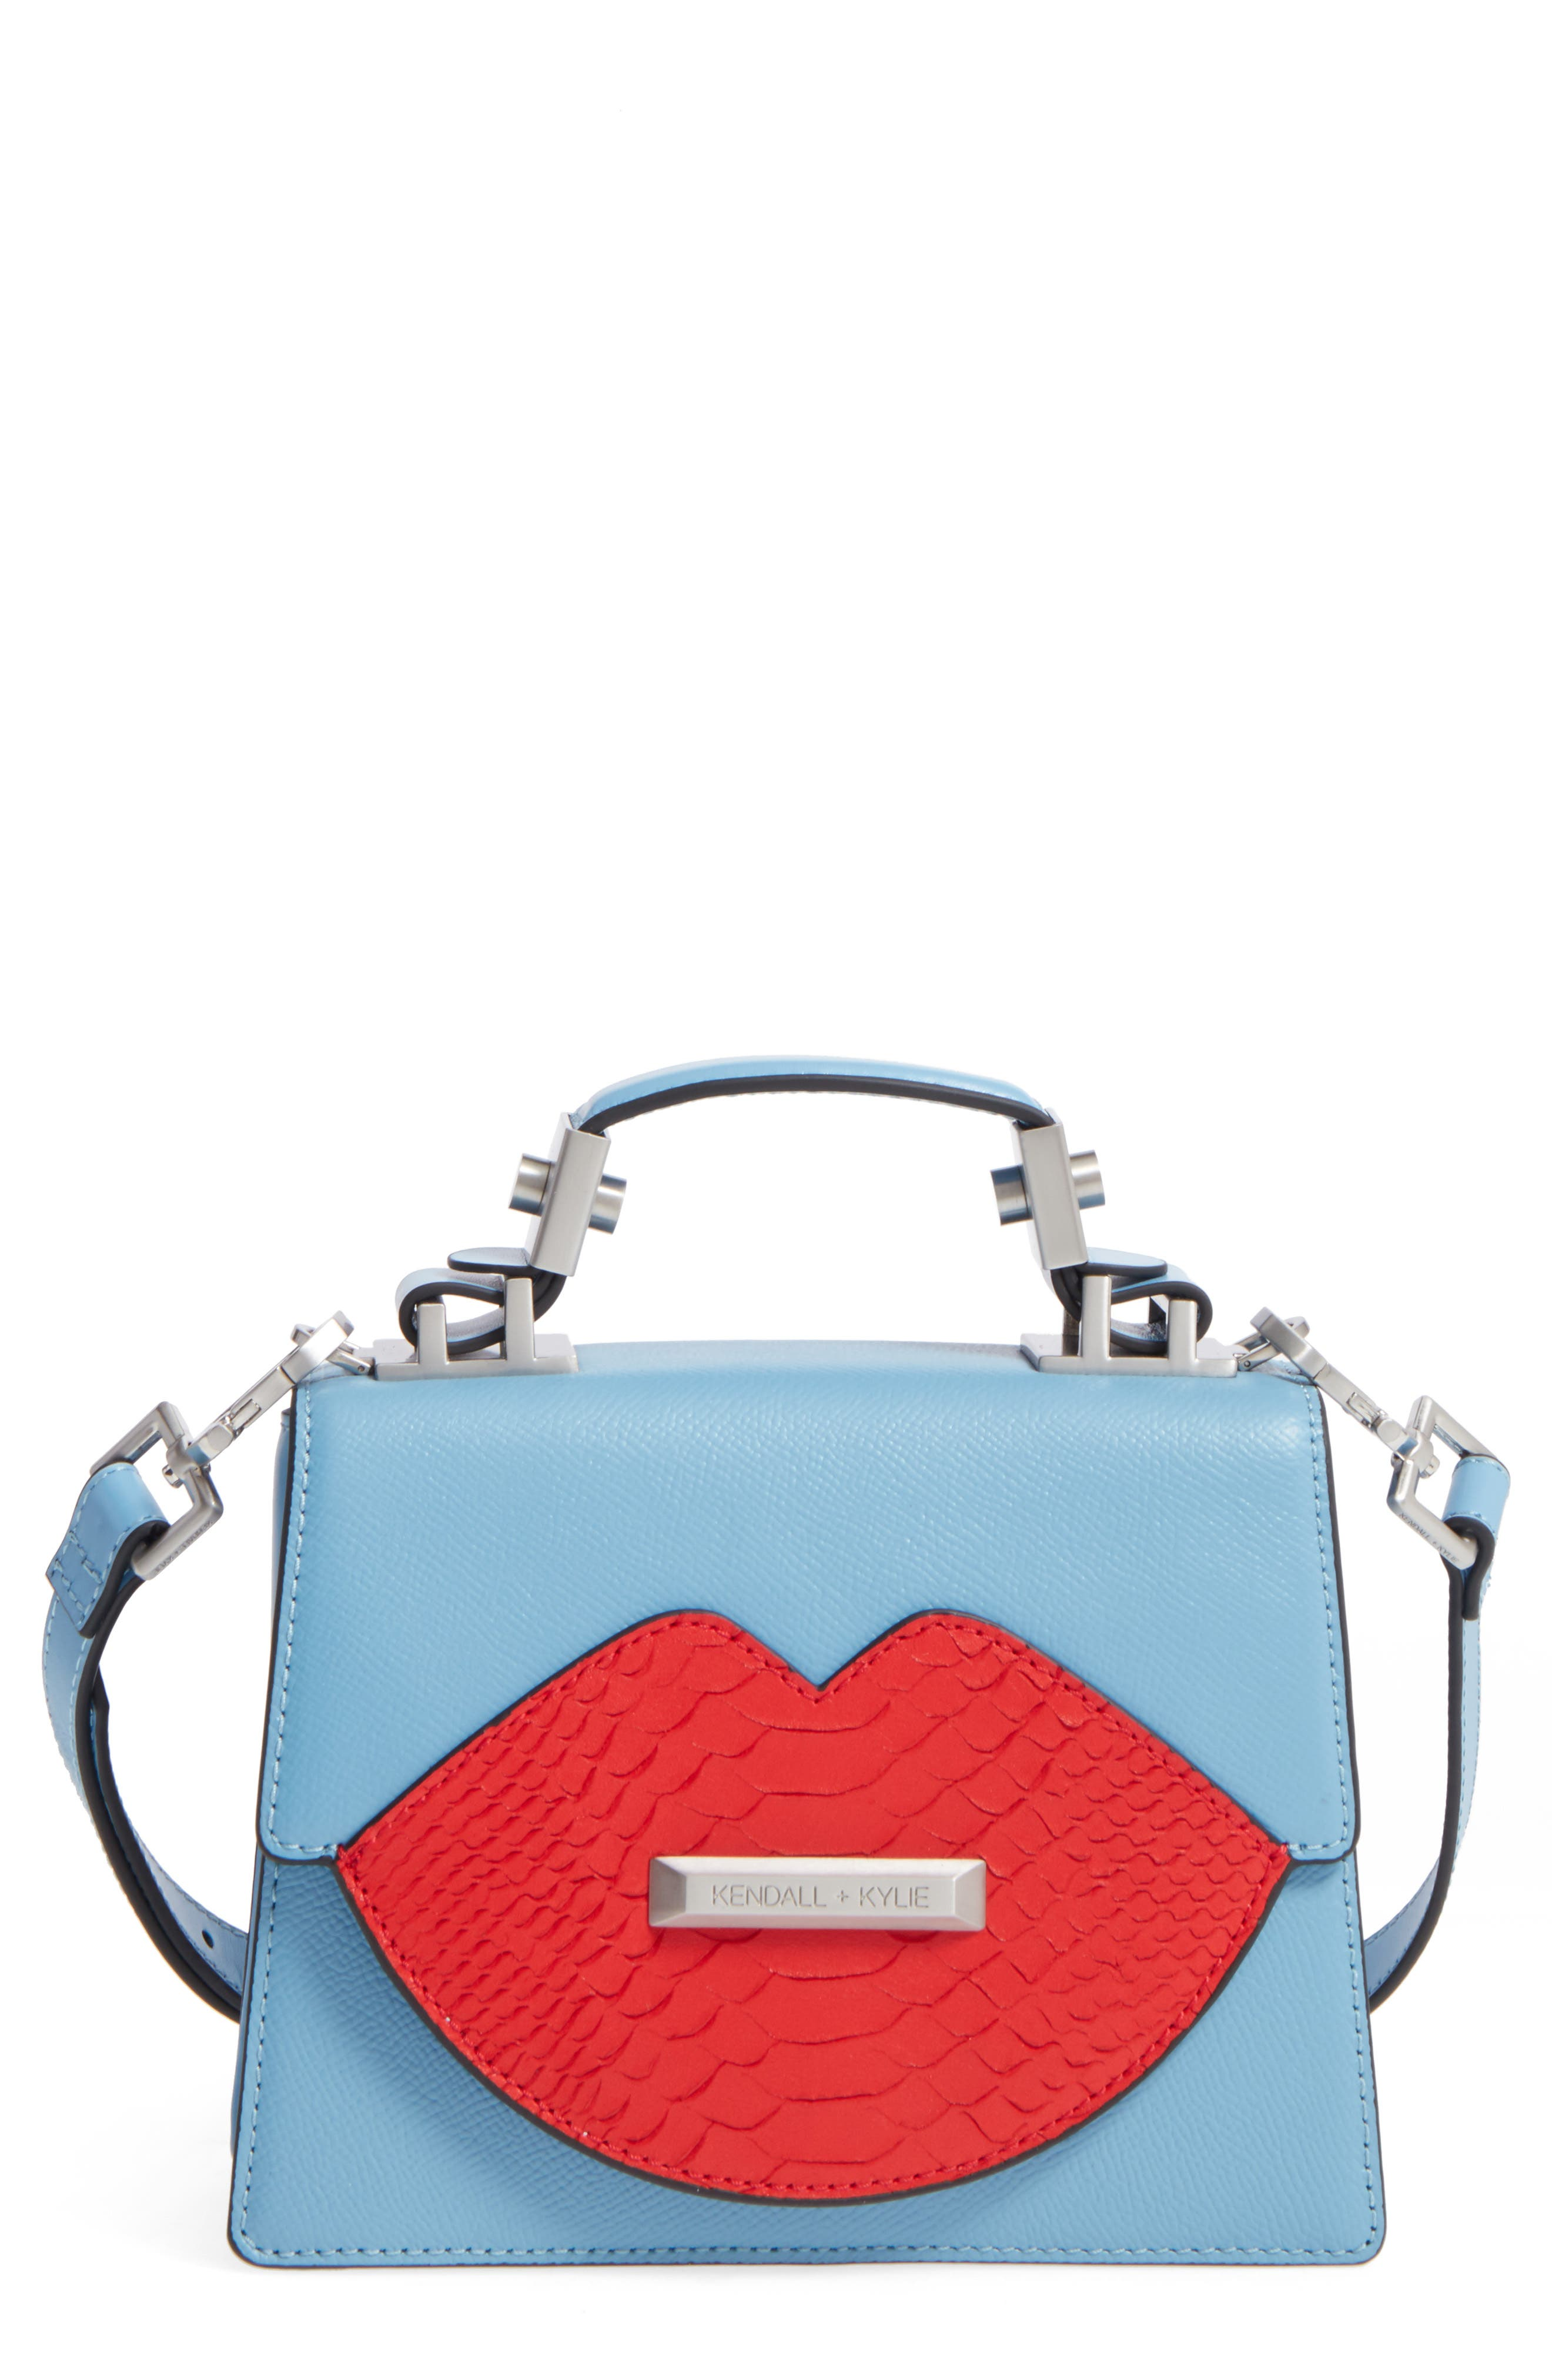 Main Image - KENDALL + KYLIE Lips Leather Top Handle Satchel